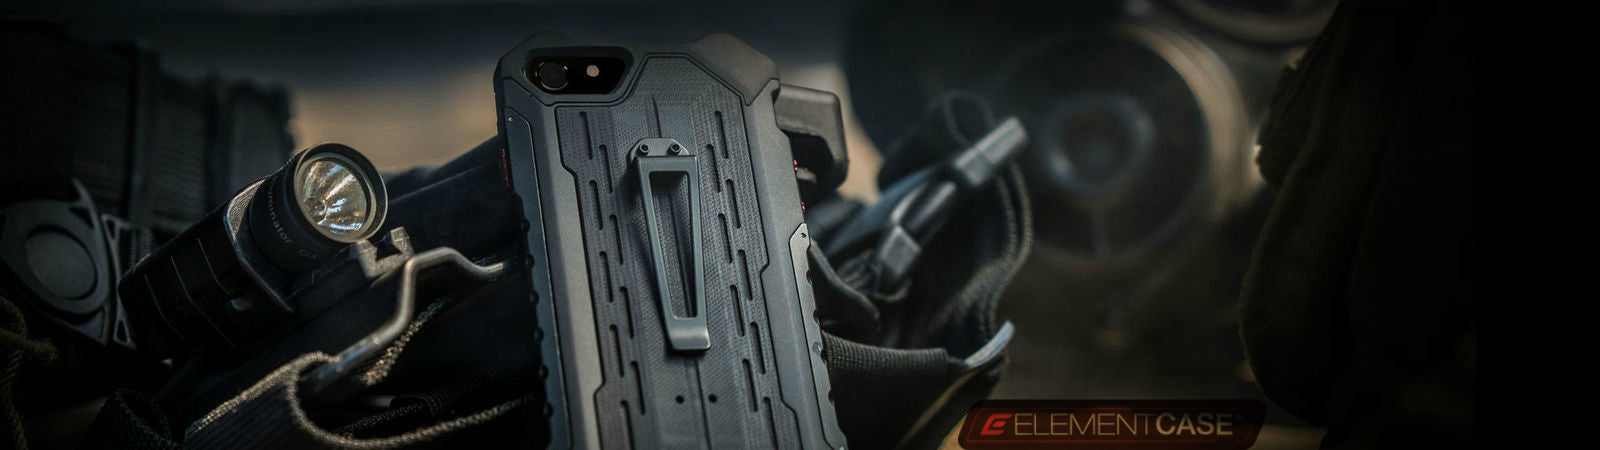 The Black Ops iPhone Case from Element Case